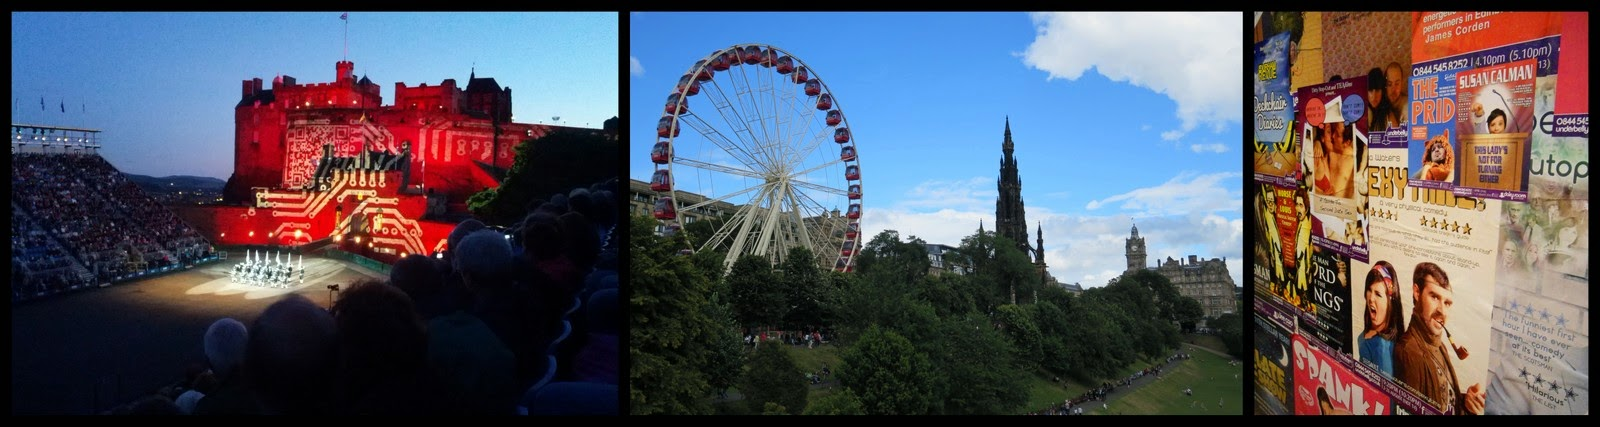 Ryanair Weekend Destination Ideas: Edinburgh Fringe in August